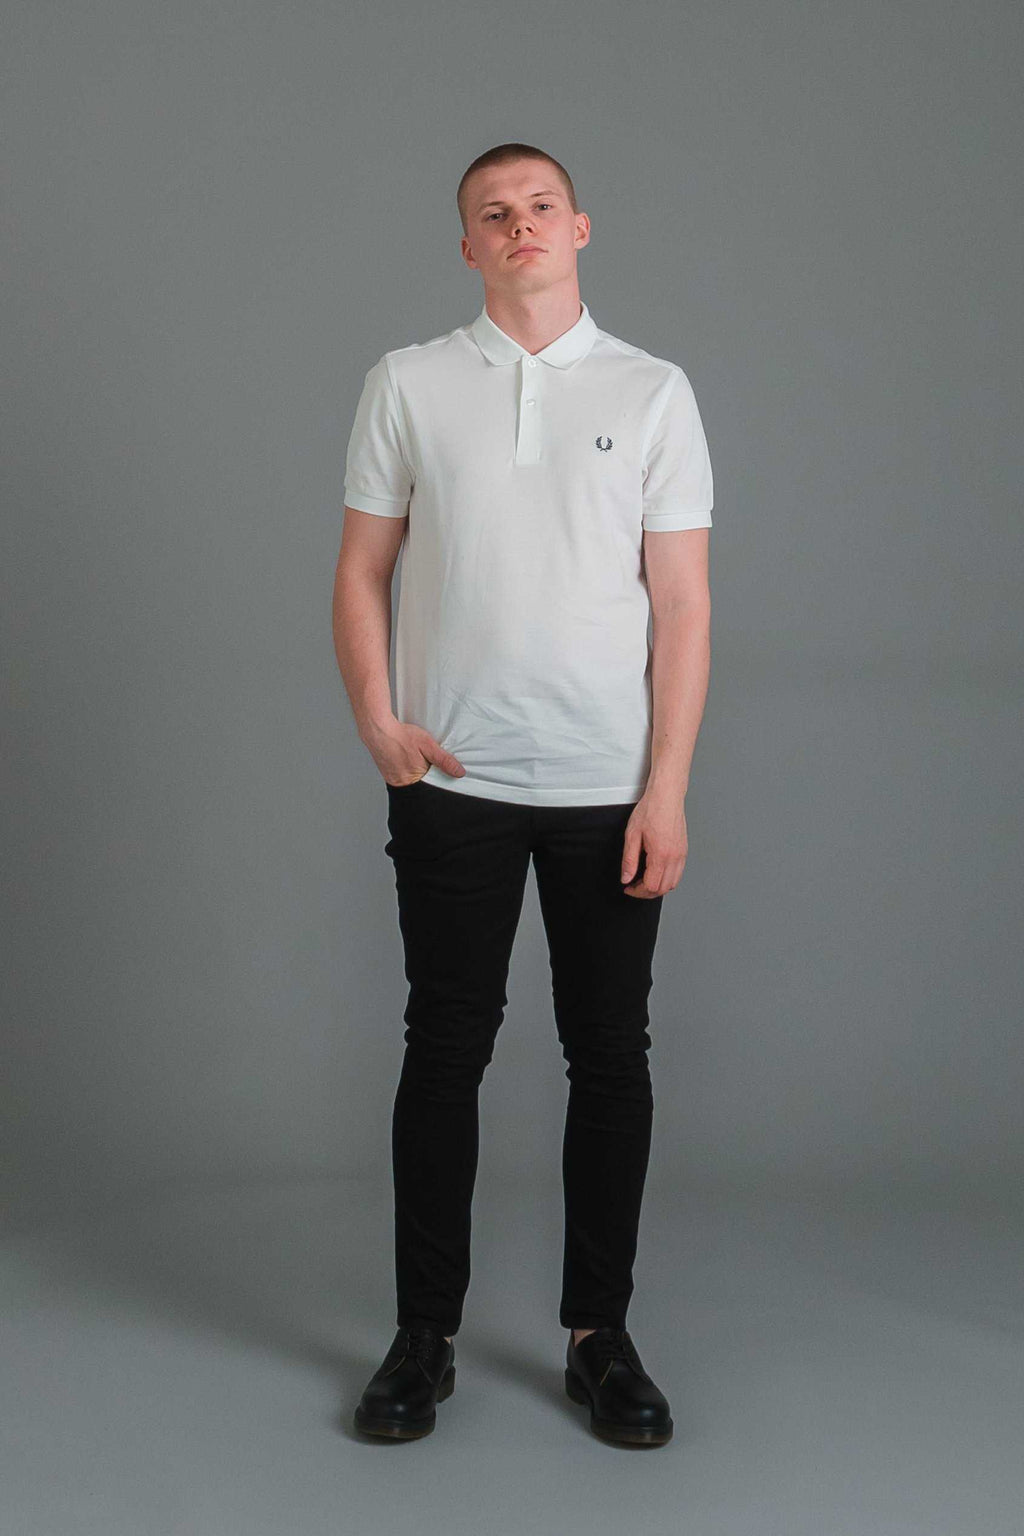 "Fred Perry Plain miesten pikeepaita - valkoinen I INCH"" Tampere"